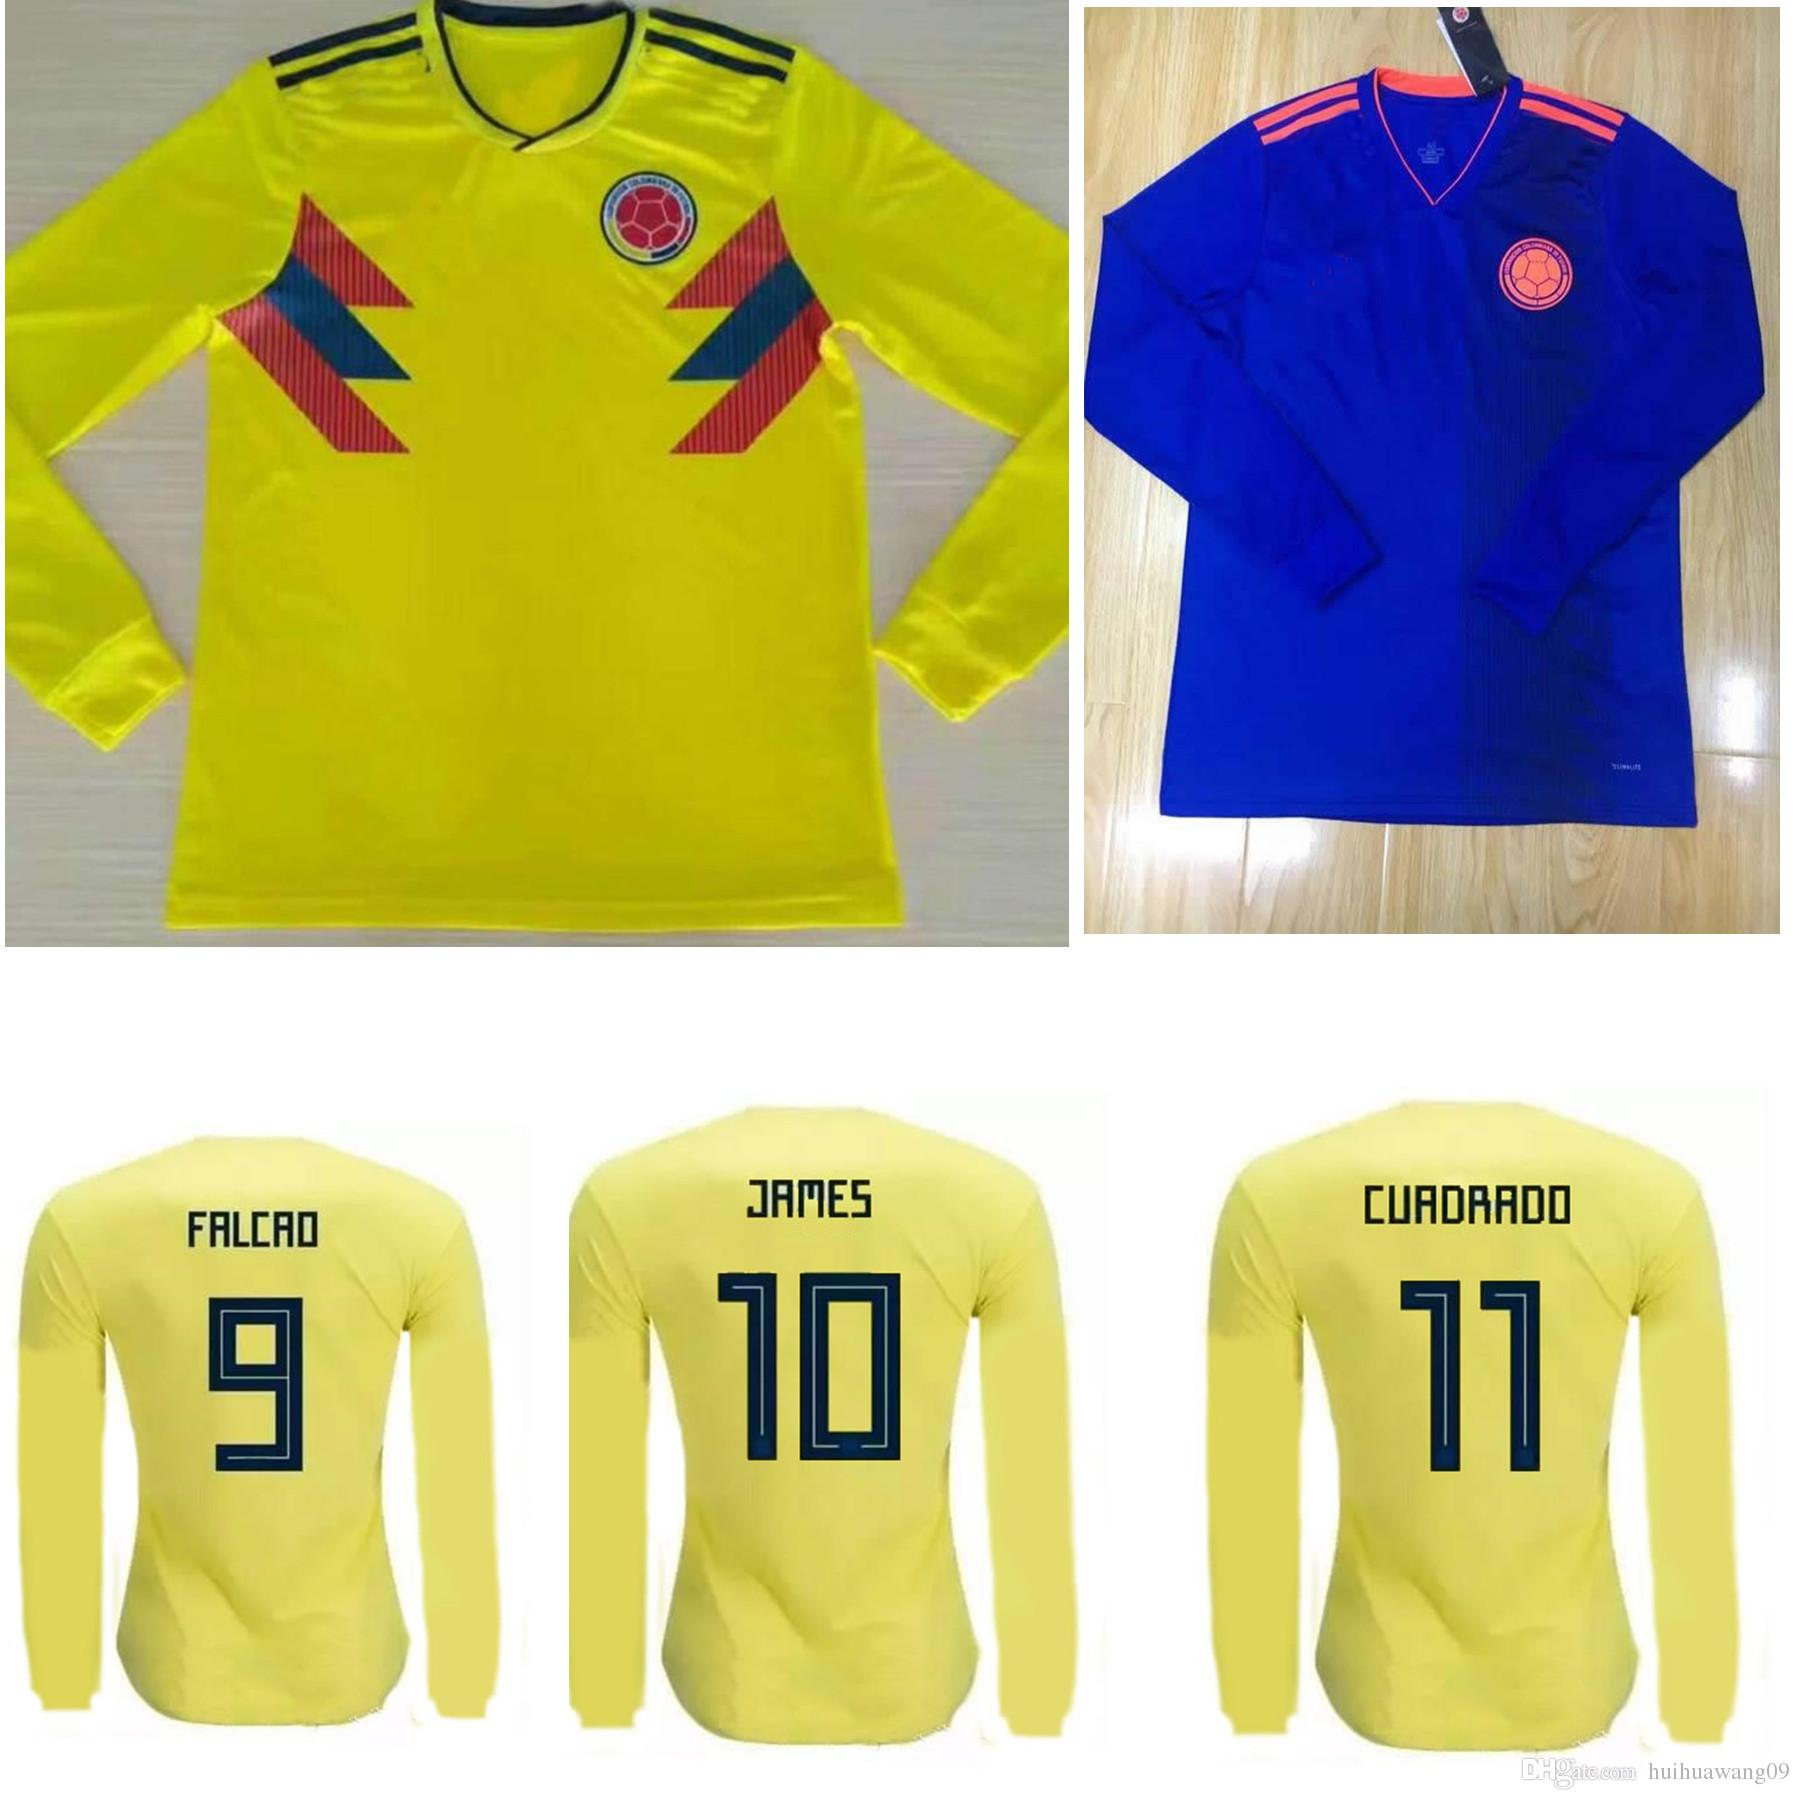 Buy Cheap Football Shirts From China - Cotswold Hire eebc47fda